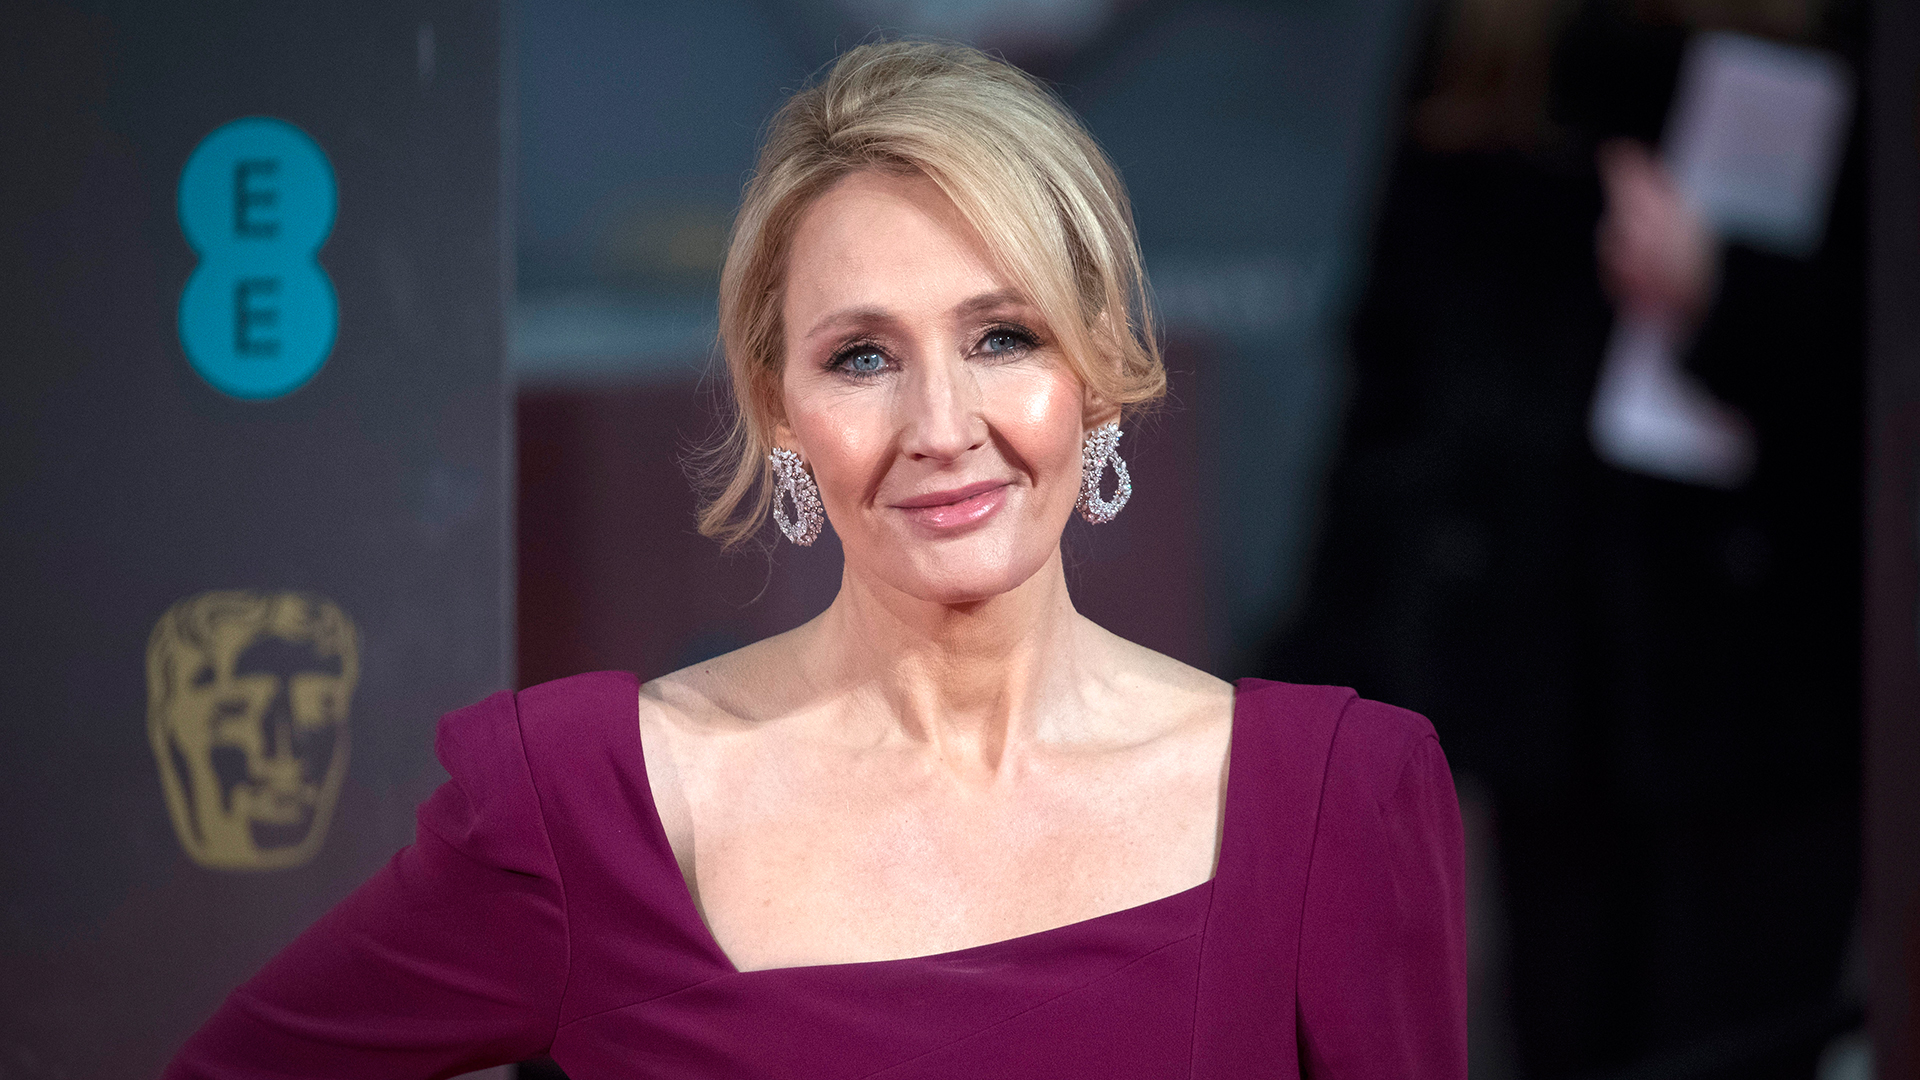 July 31, 1965: 'Harry Potter' Author J.K. Rowling Was Born